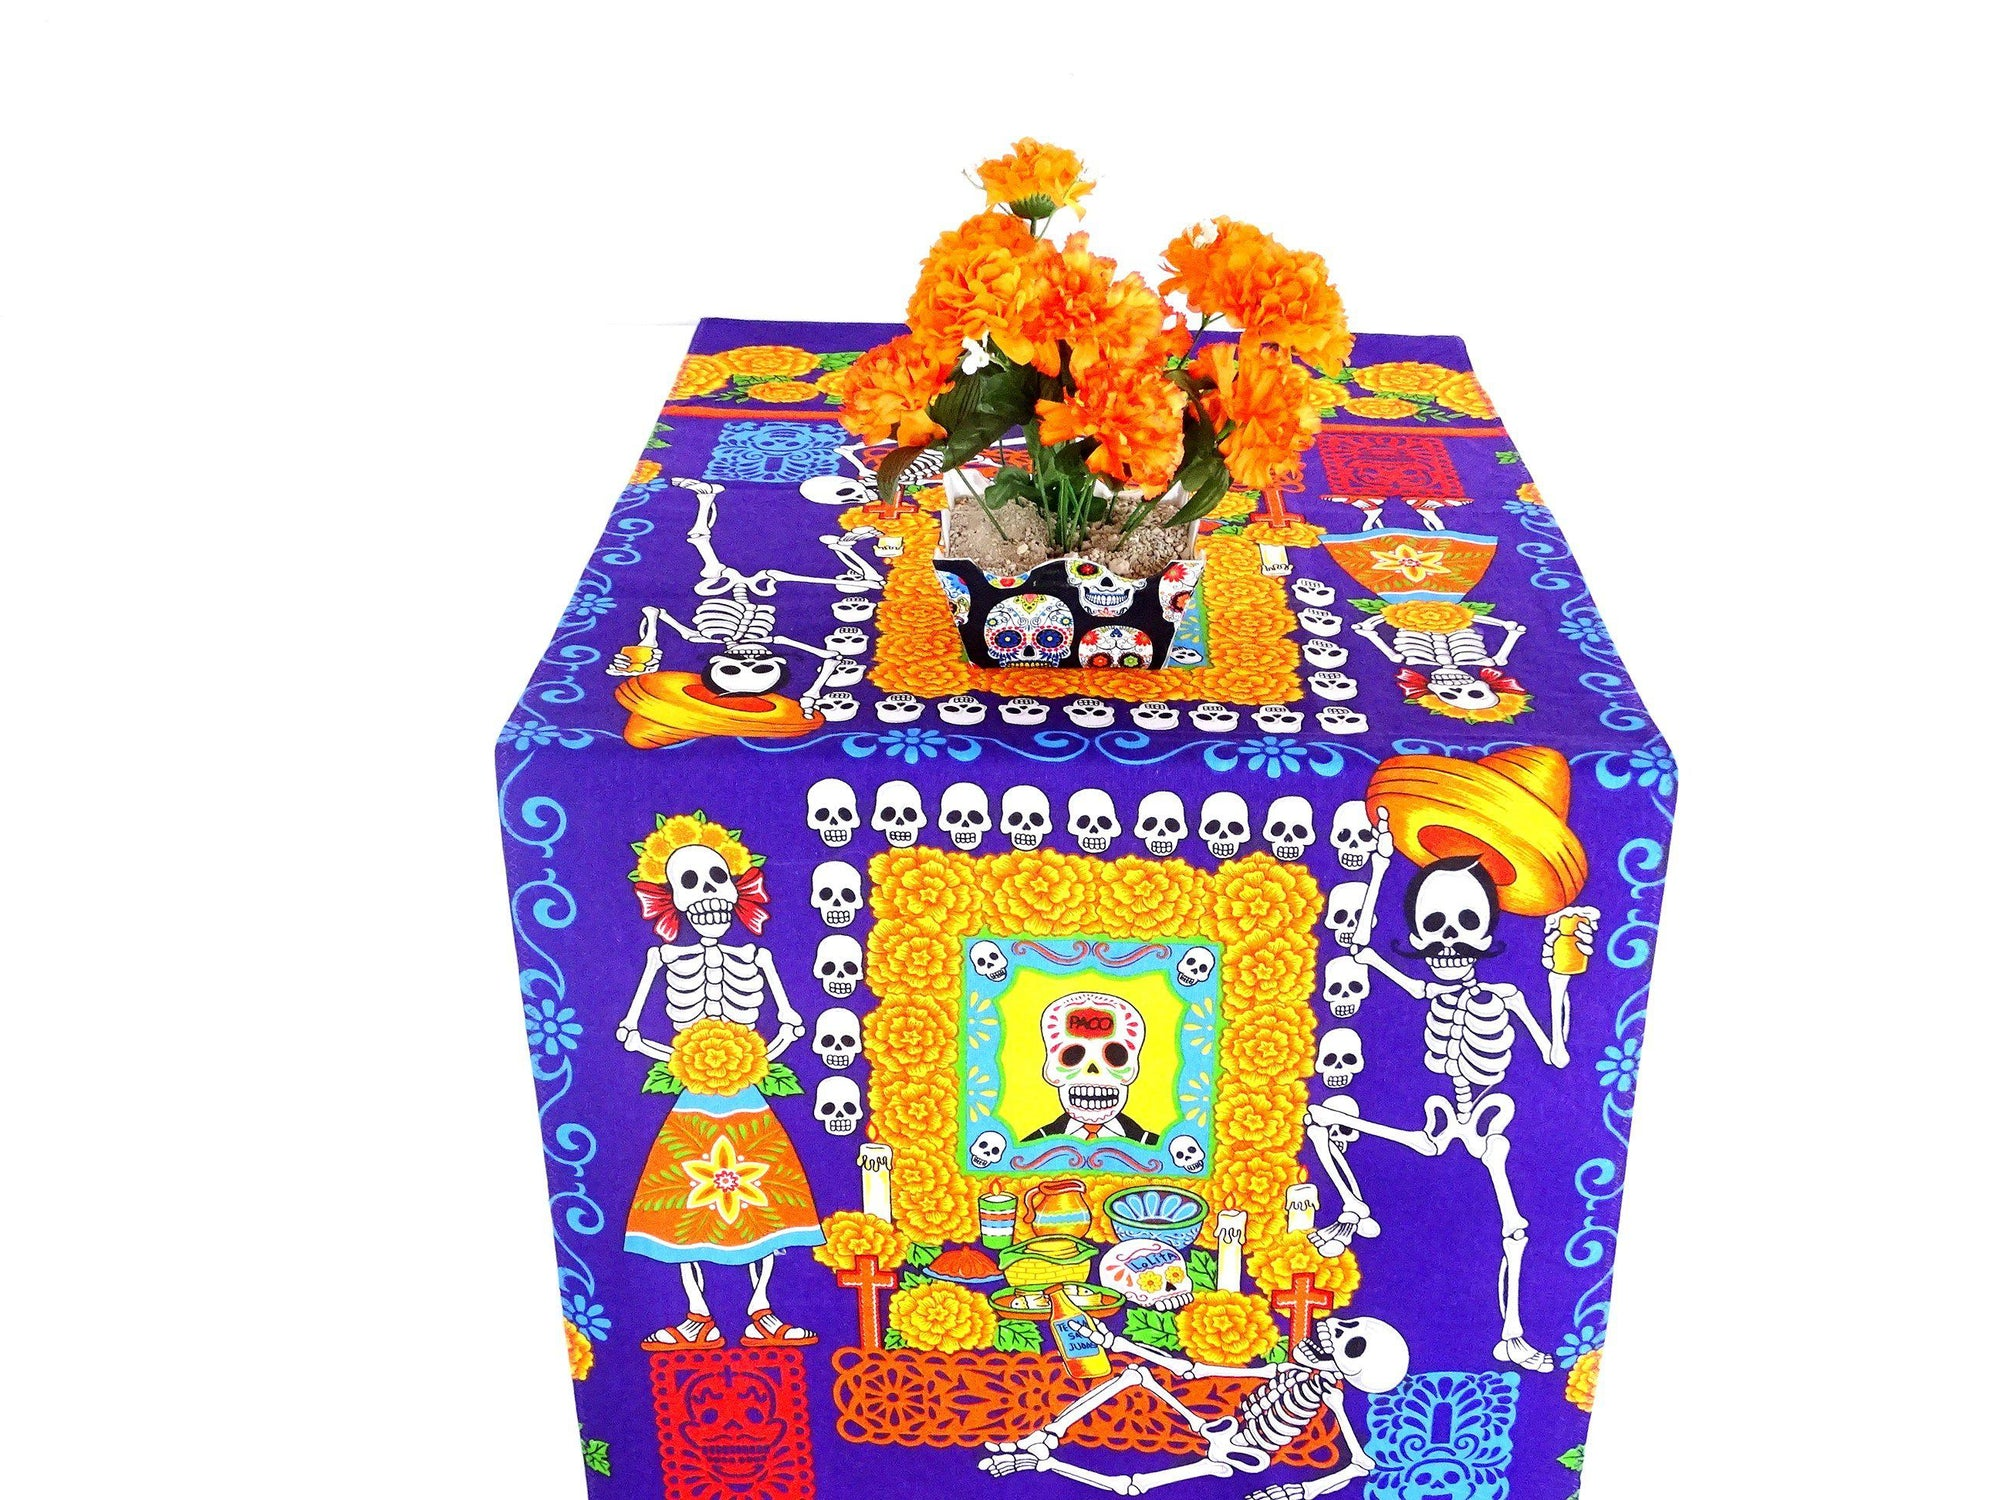 Mexican Table runner, Dia de Muertos Decorations, Day of the Dead Party Supplies Altar TRM3